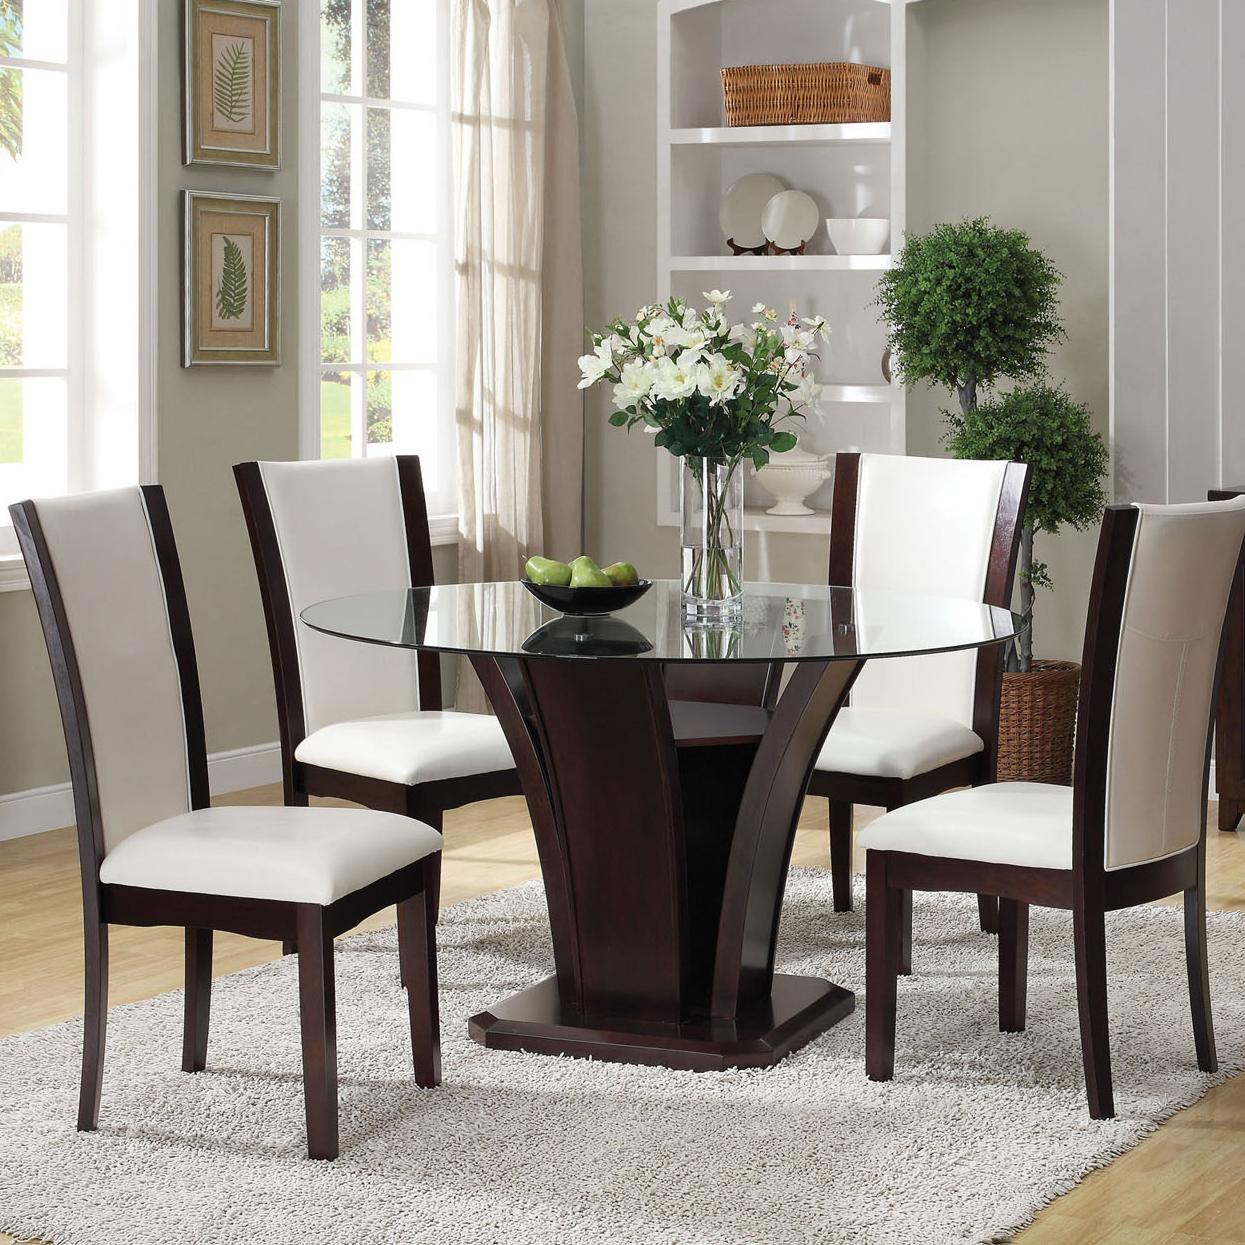 Acme Furniture Malik 5 Piece Dining Round Table And Chair Set